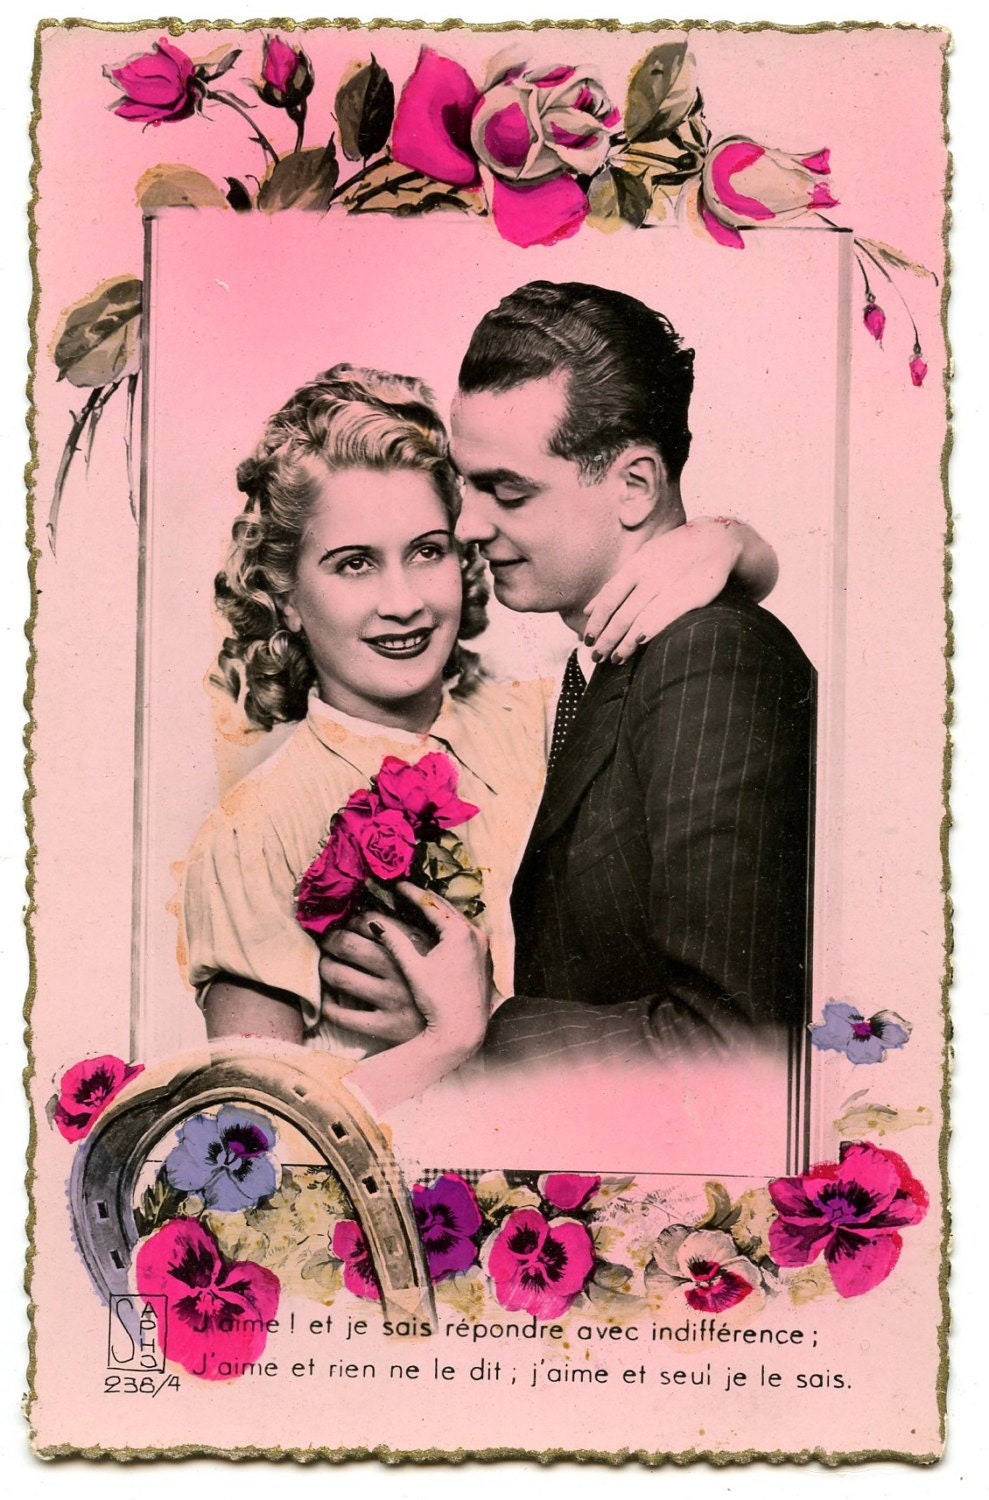 Image of 1940s Romantic Couple Postcard Antique Vintage Romance Flowers Roses Paris